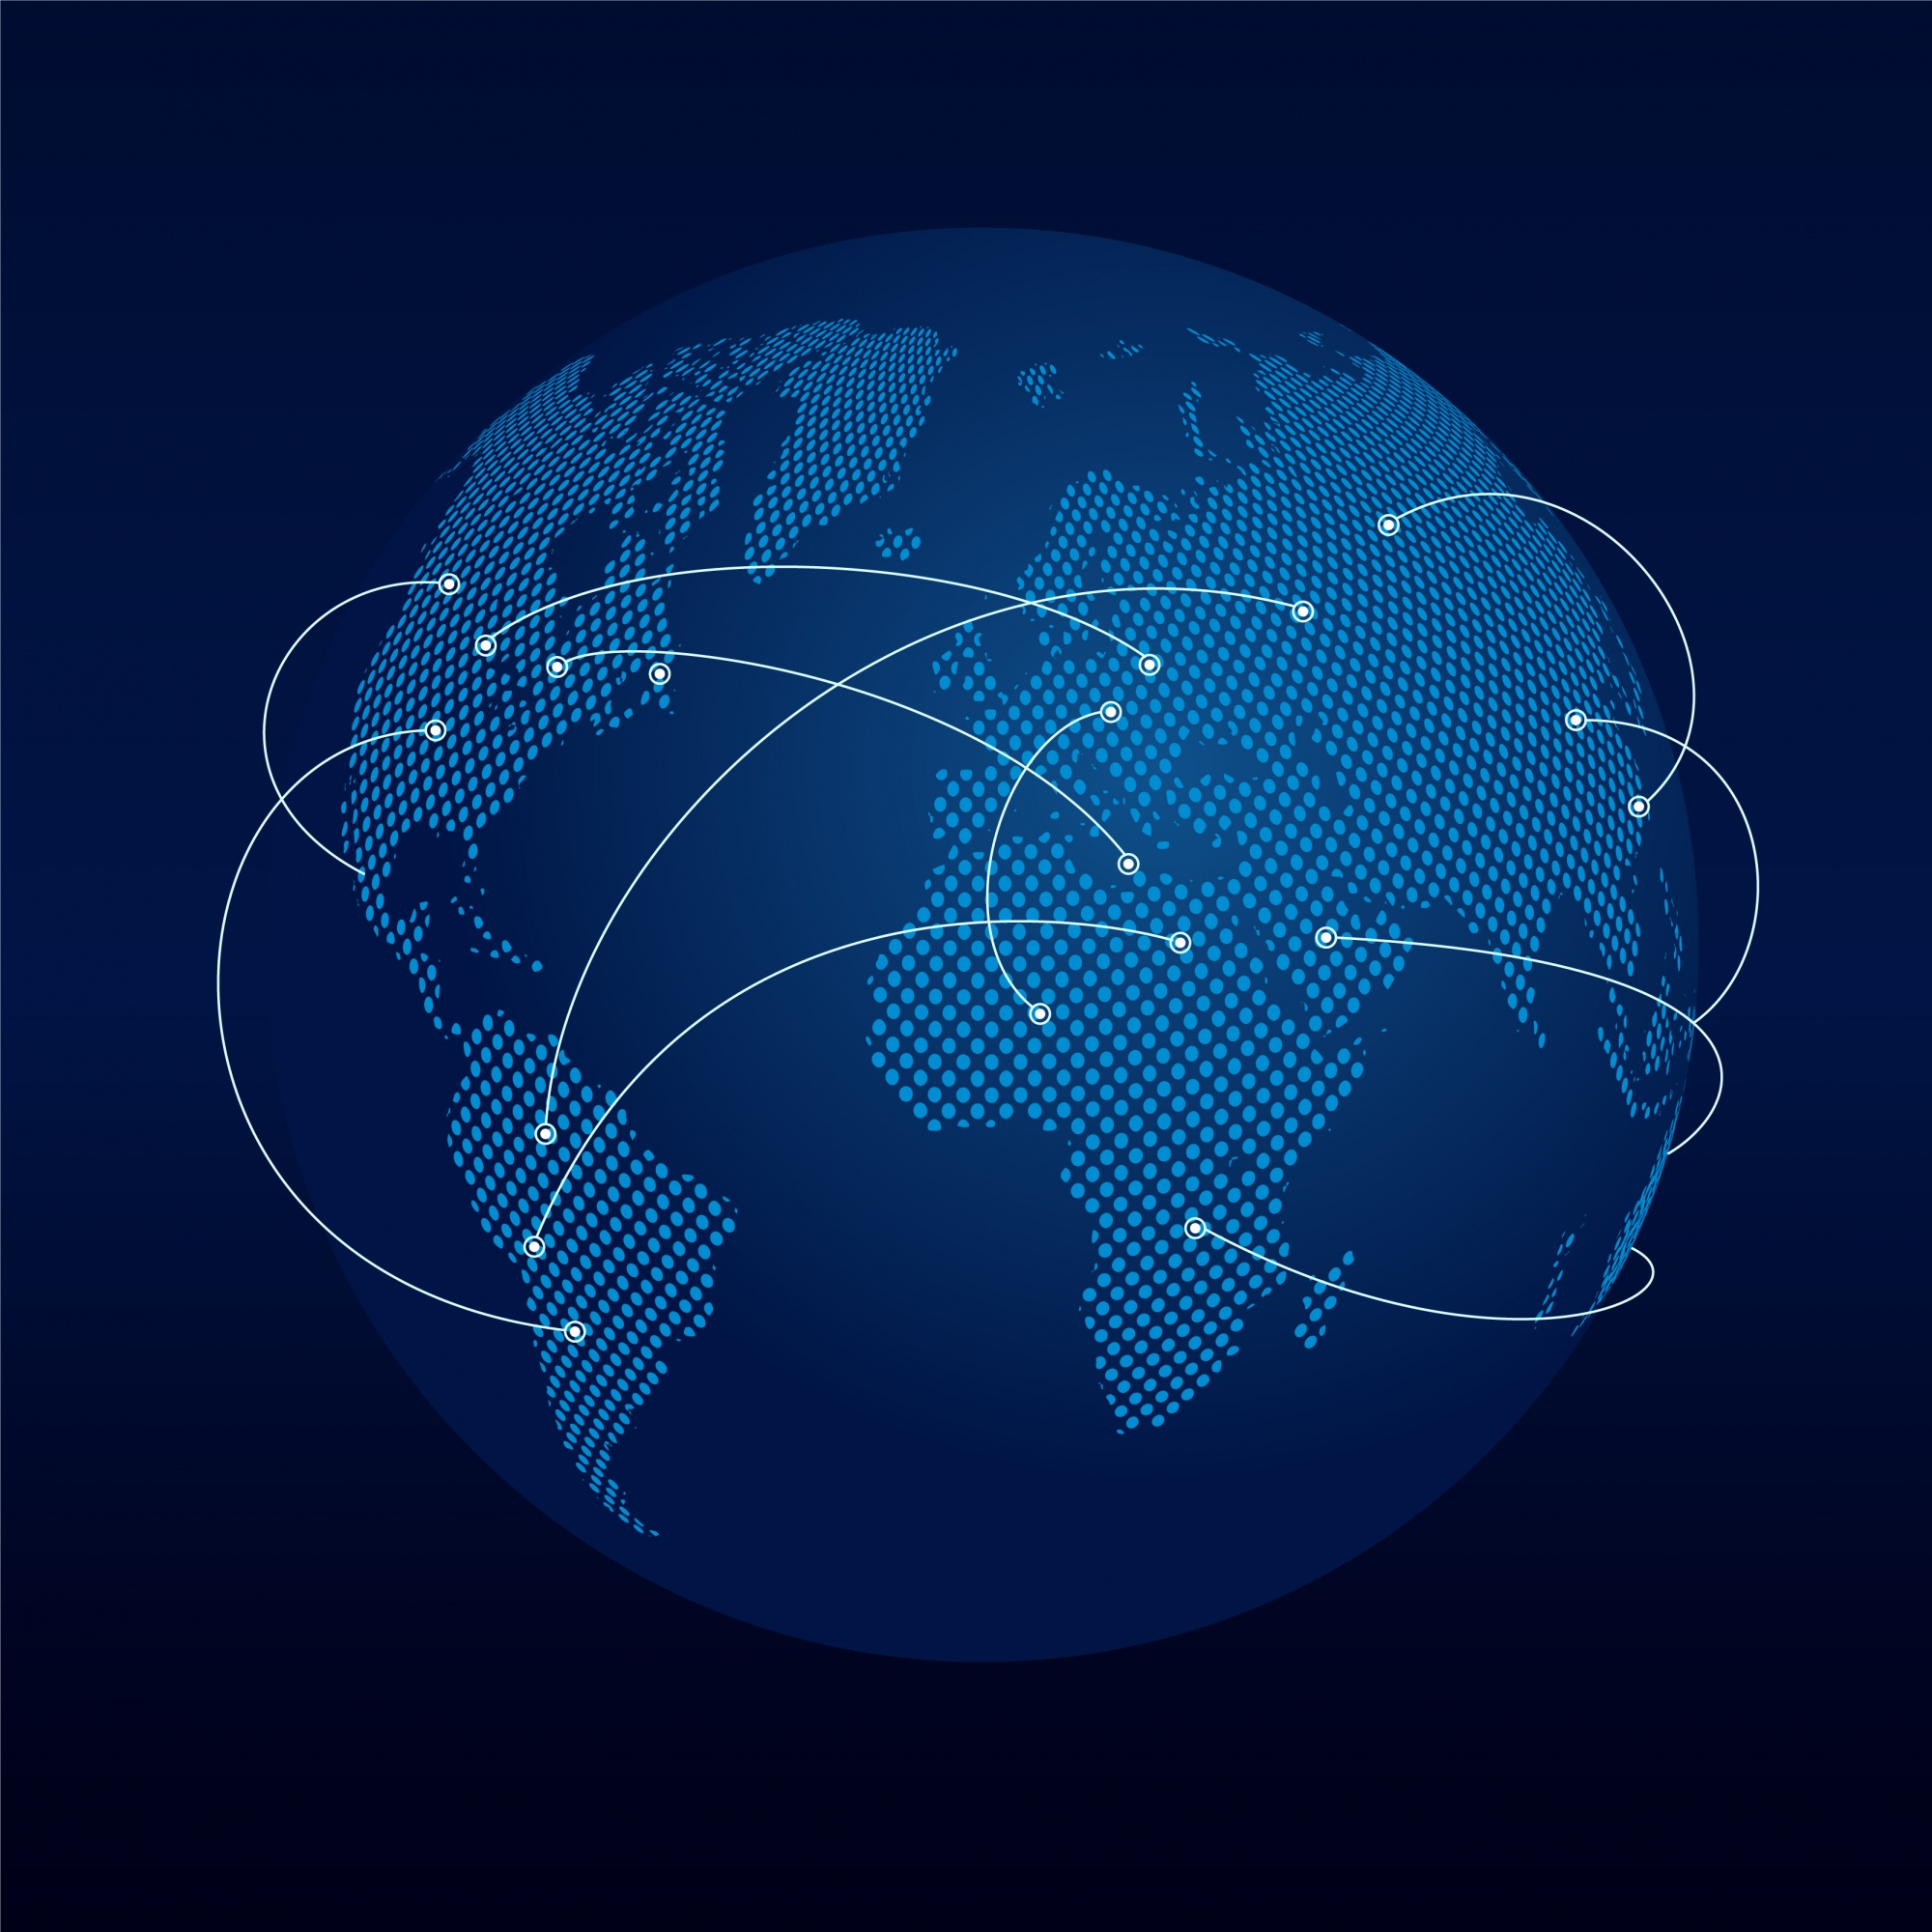 Dark globe with connection lines